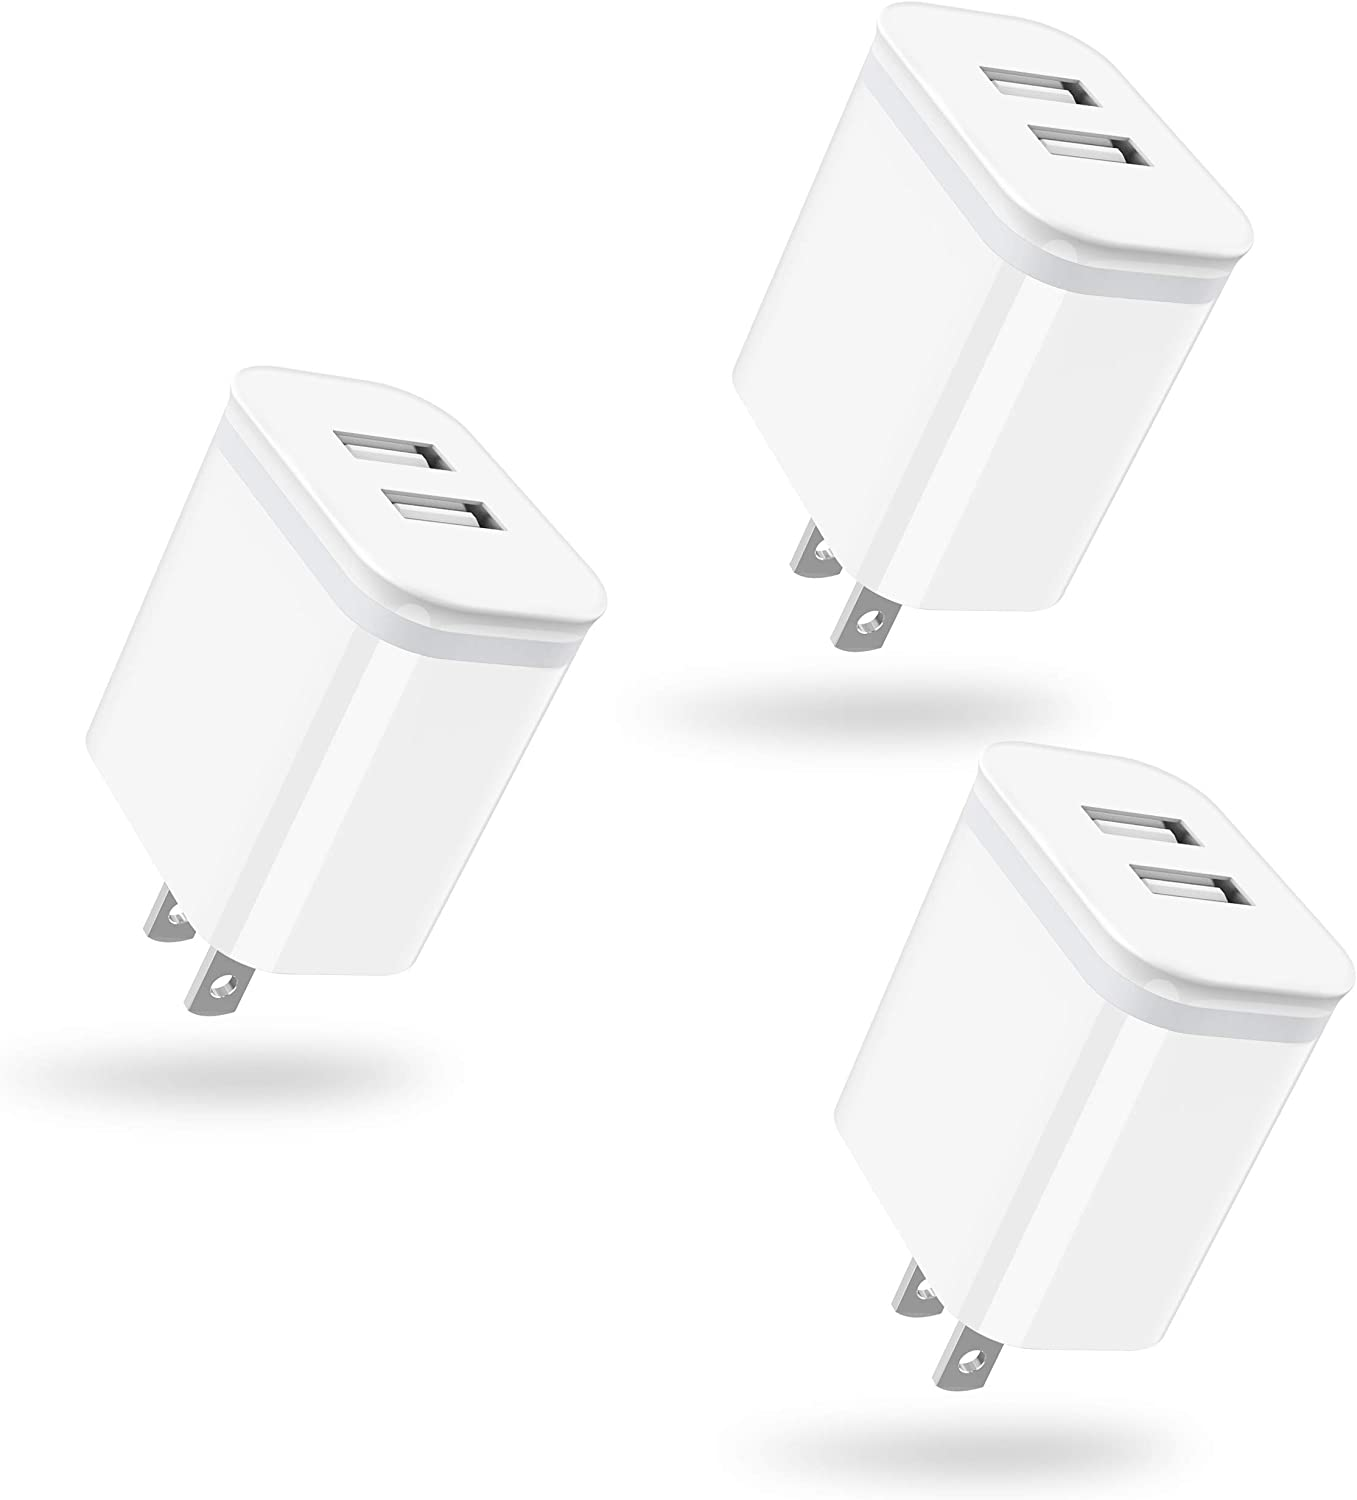 USB Wall Charger, DECIPA 3-Pack 2.1A/5V Dual Port USB Block Power Adapter Charger Plug Charging Cube Replacement for iPhone Xs Max XR X 8/7/6 6S Plus 5S, Samsung, LG, HTC, Moto, Android, Cell Phone